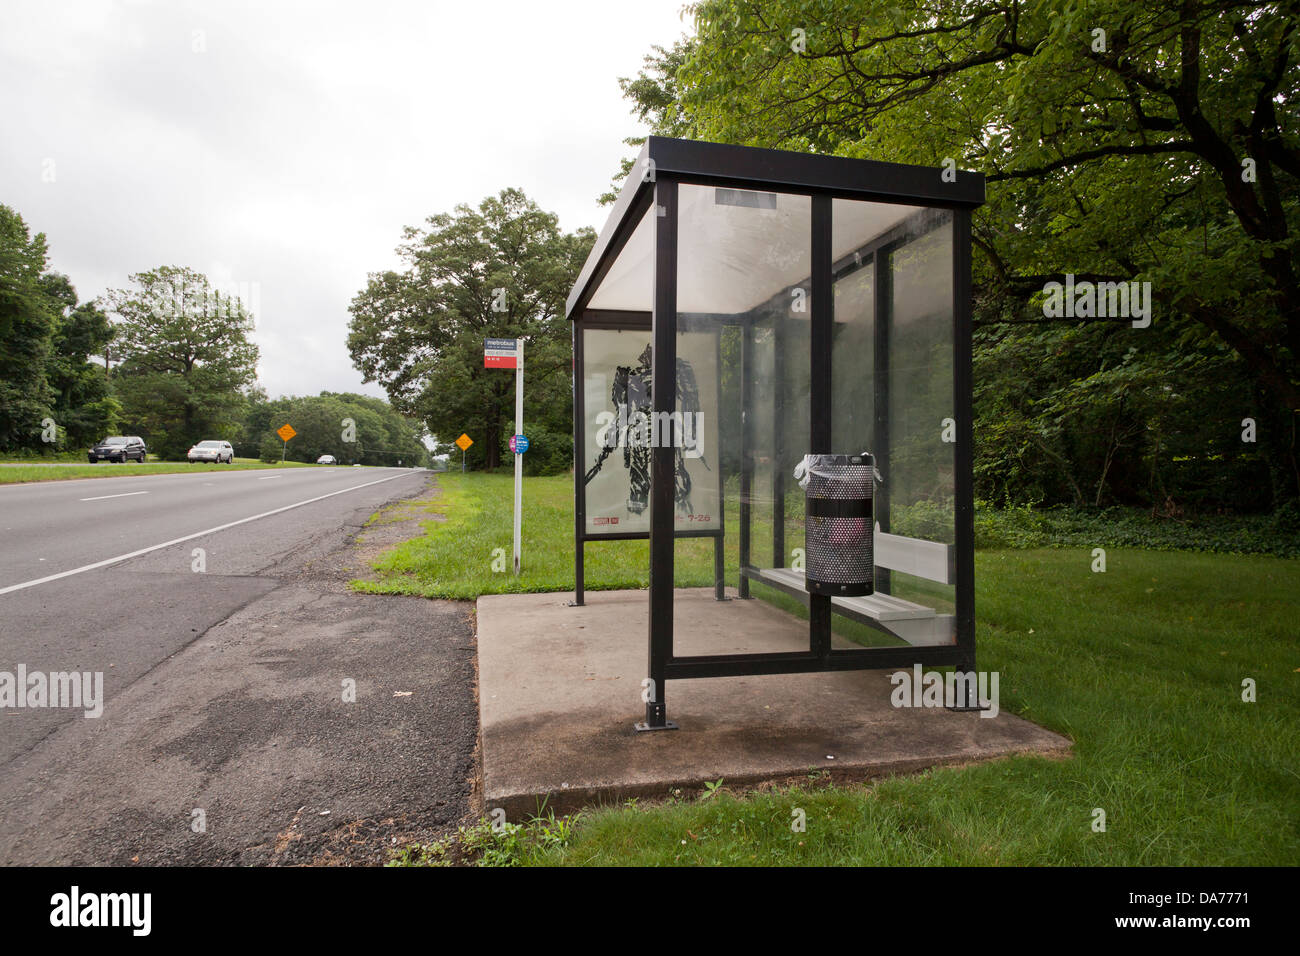 Enclosed bus shelter - Virginia, USA - Stock Image